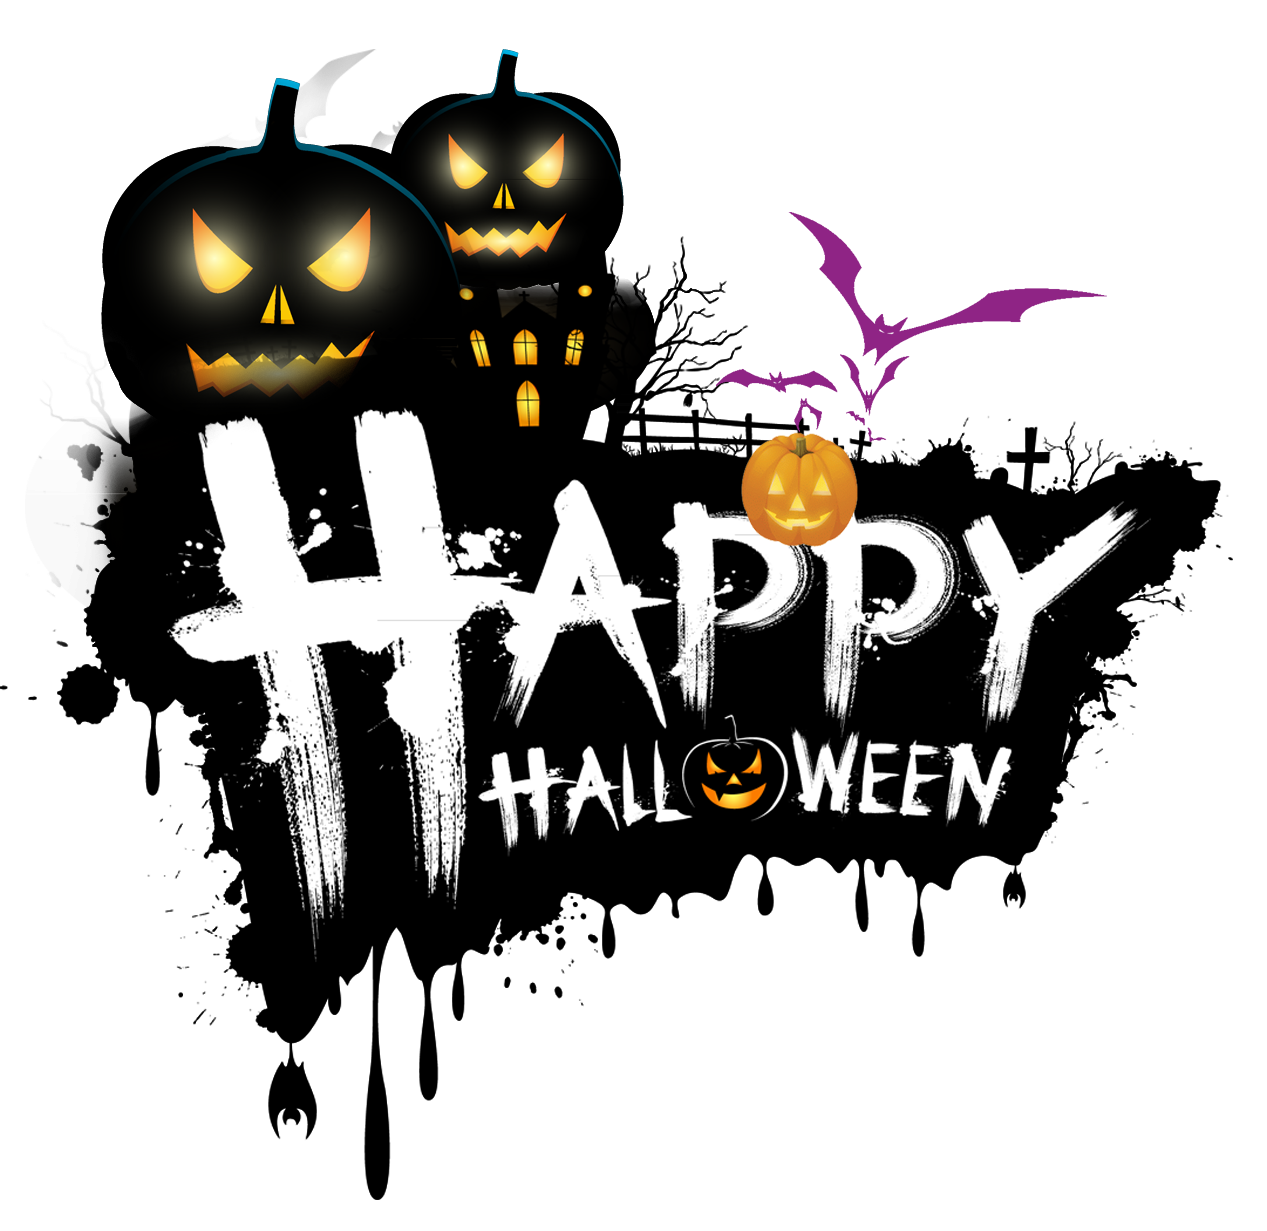 The Halloween Tree Holiday Clip art.